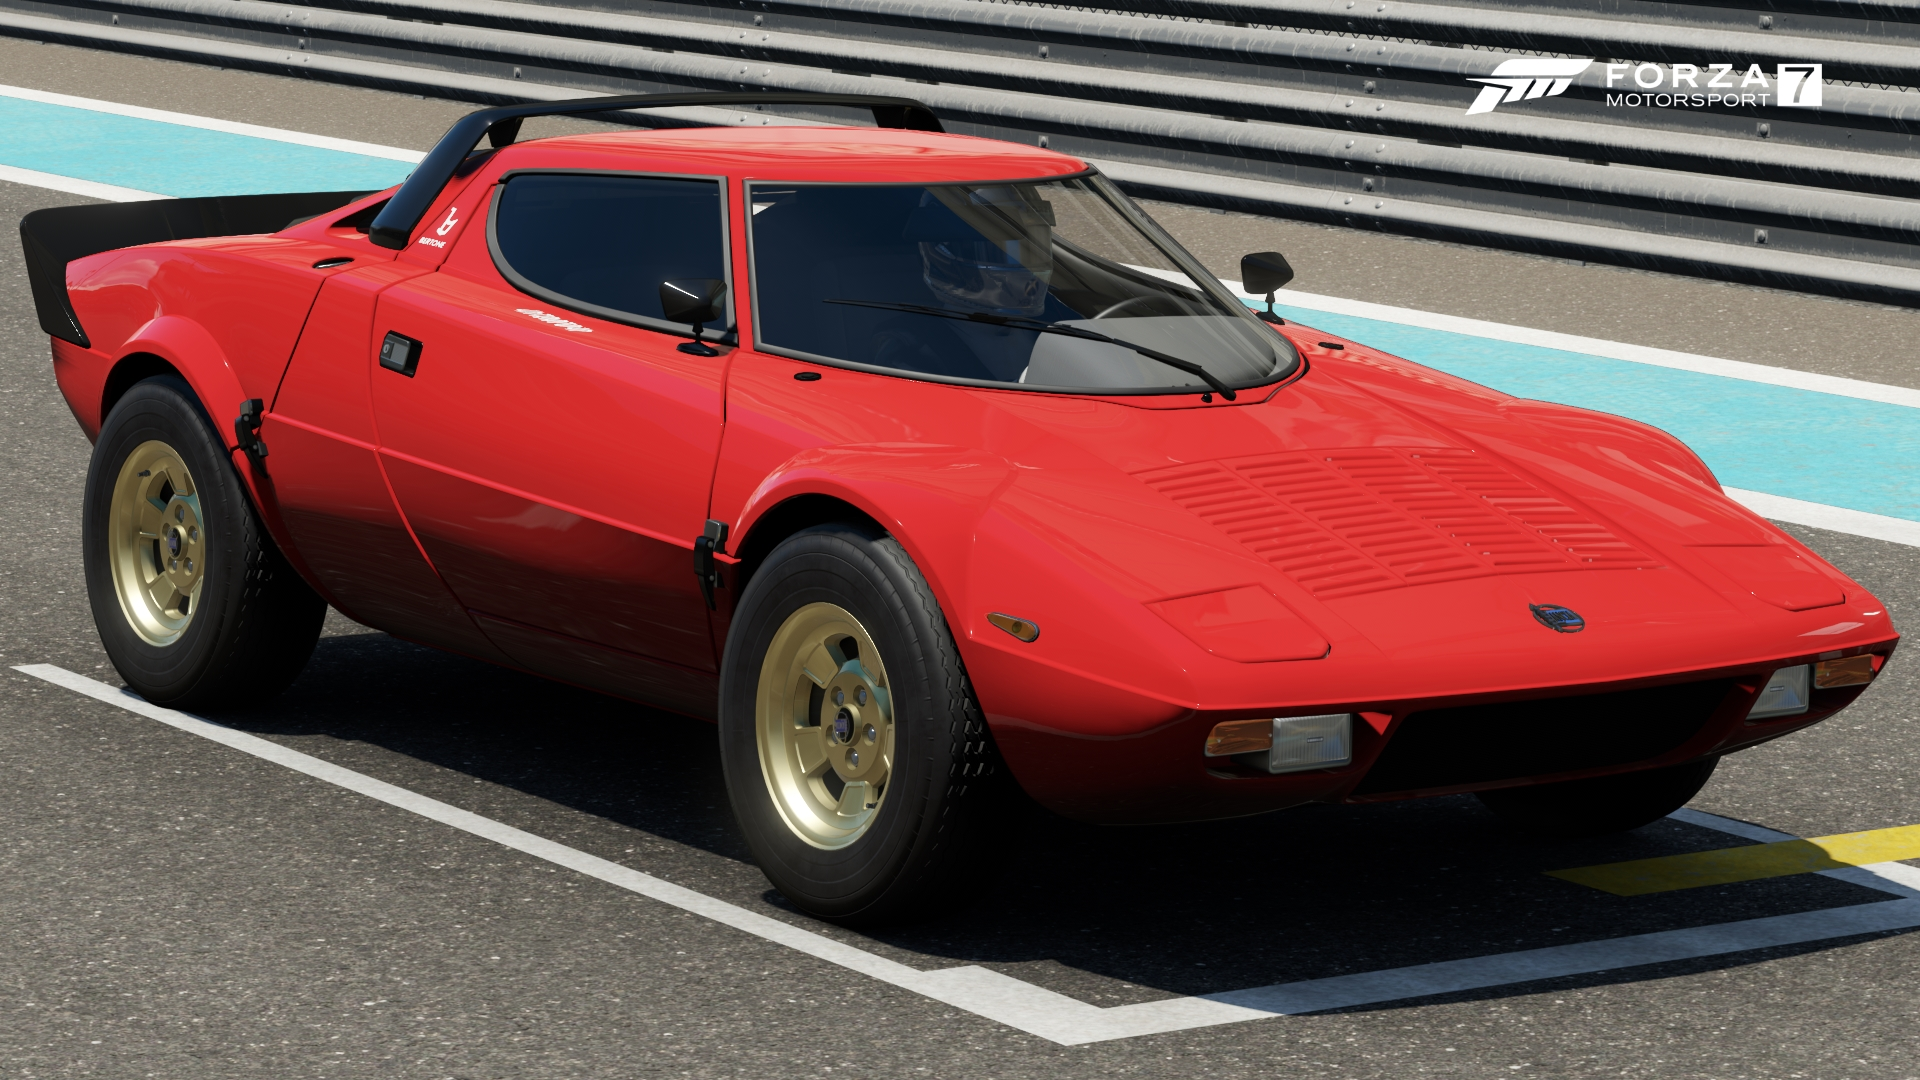 lancia stratos hf stradale forza motorsport wiki fandom powered by wikia. Black Bedroom Furniture Sets. Home Design Ideas